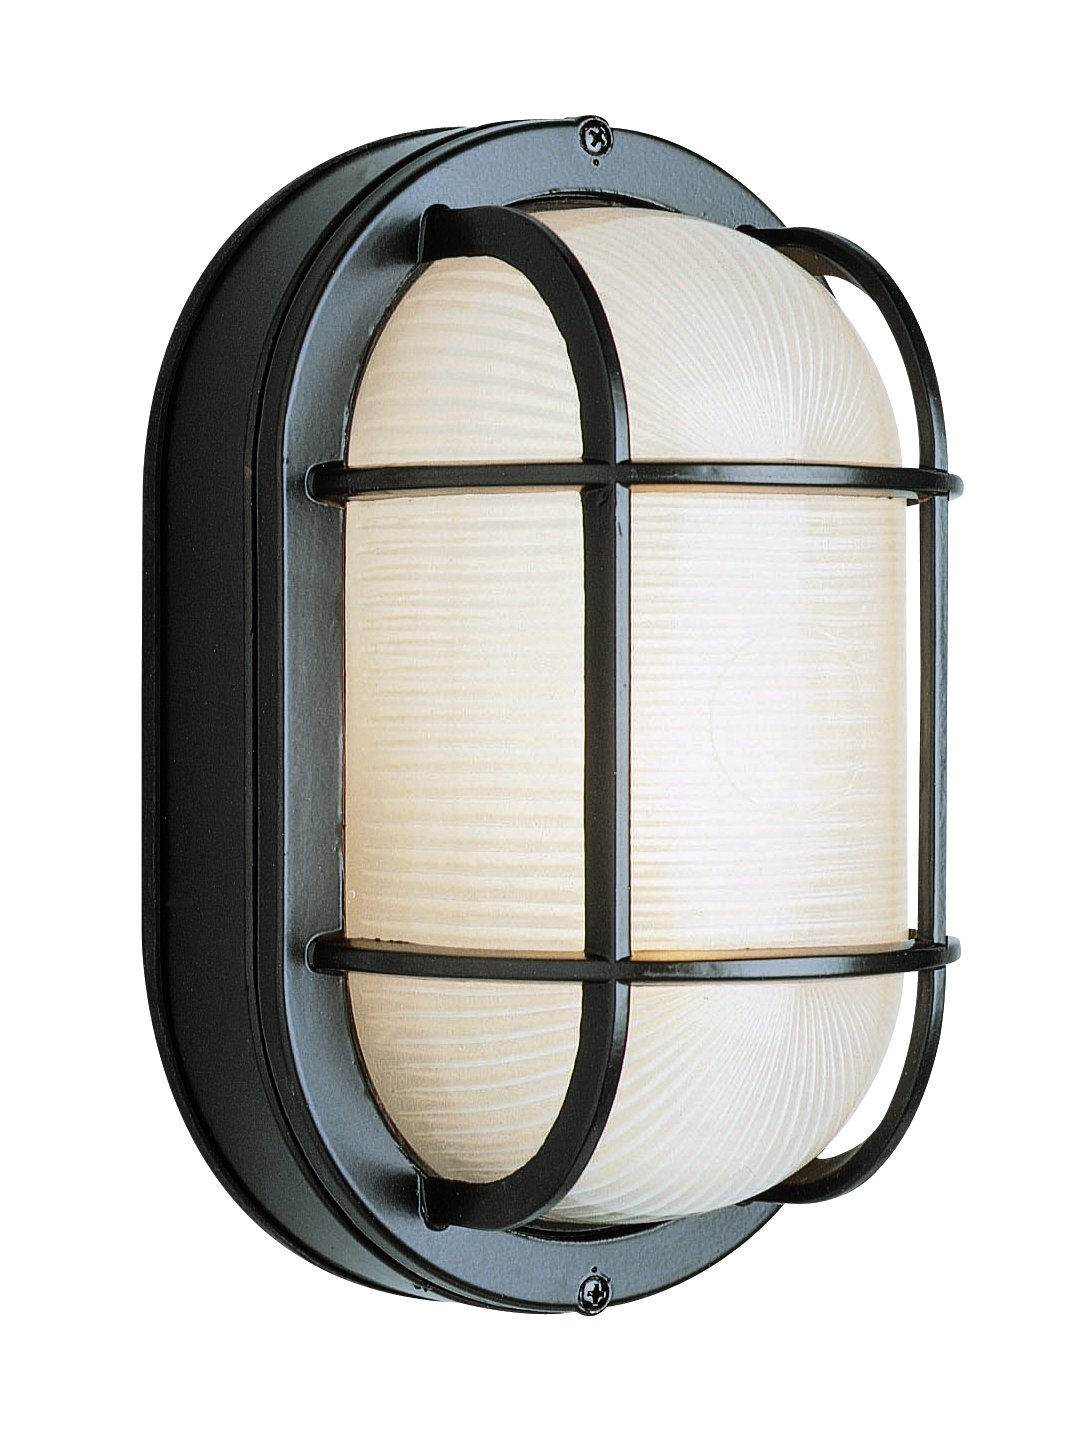 Trans Globe Lighting 41005 BK Outdoor Aria 8.5'' Bulkhead, Black by Trans Globe Lighting